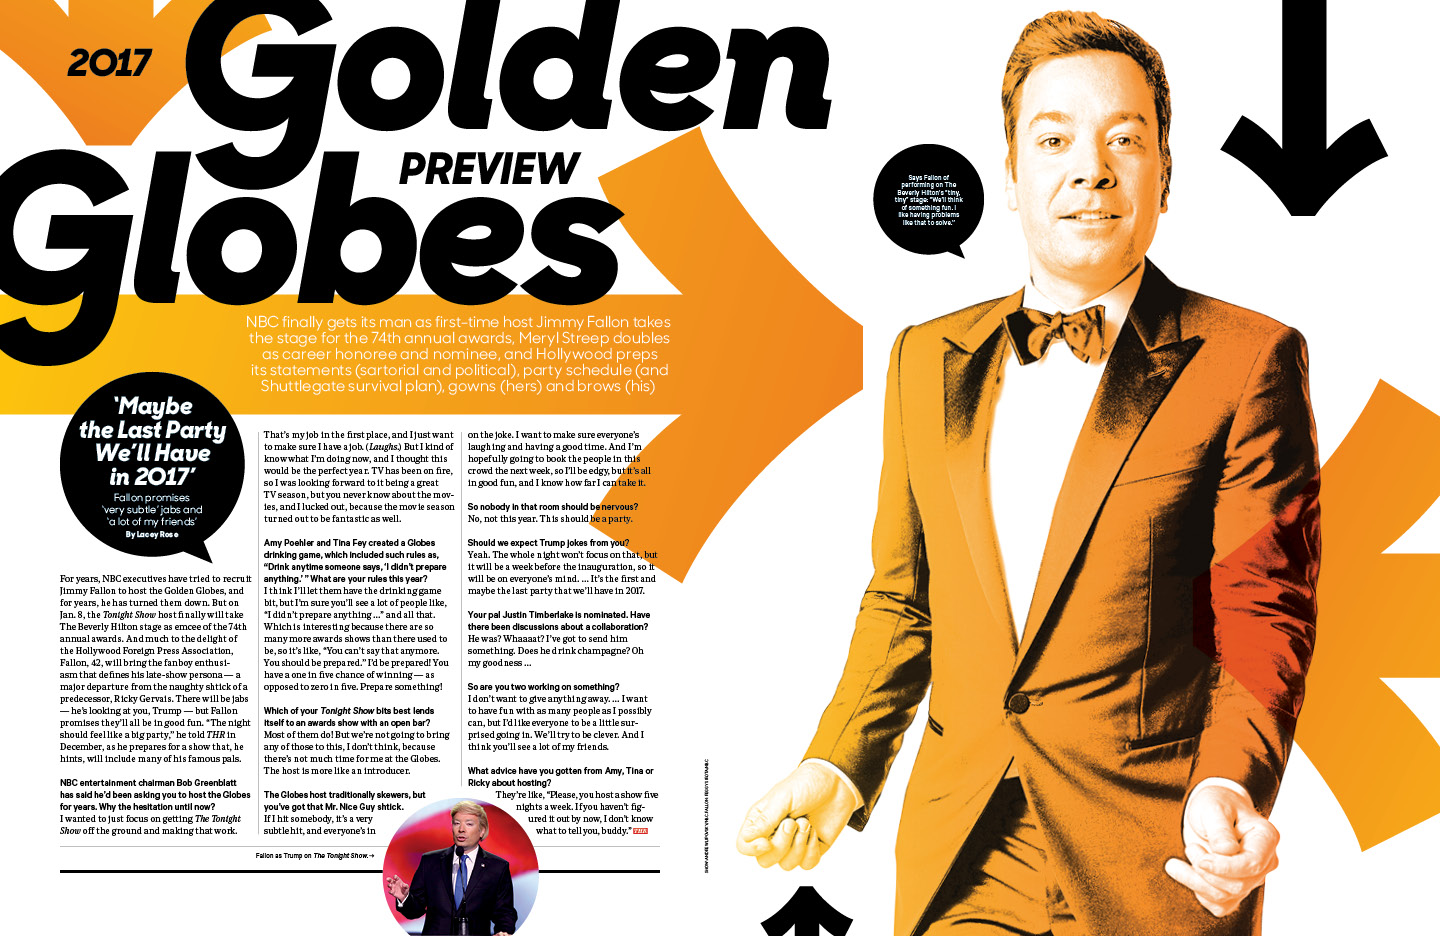 2017 Golden Globes Preview / The Hollywood Reporter / 1.13.17 / kelsey stefanson / art direction + graphic design / yeskelsey.com